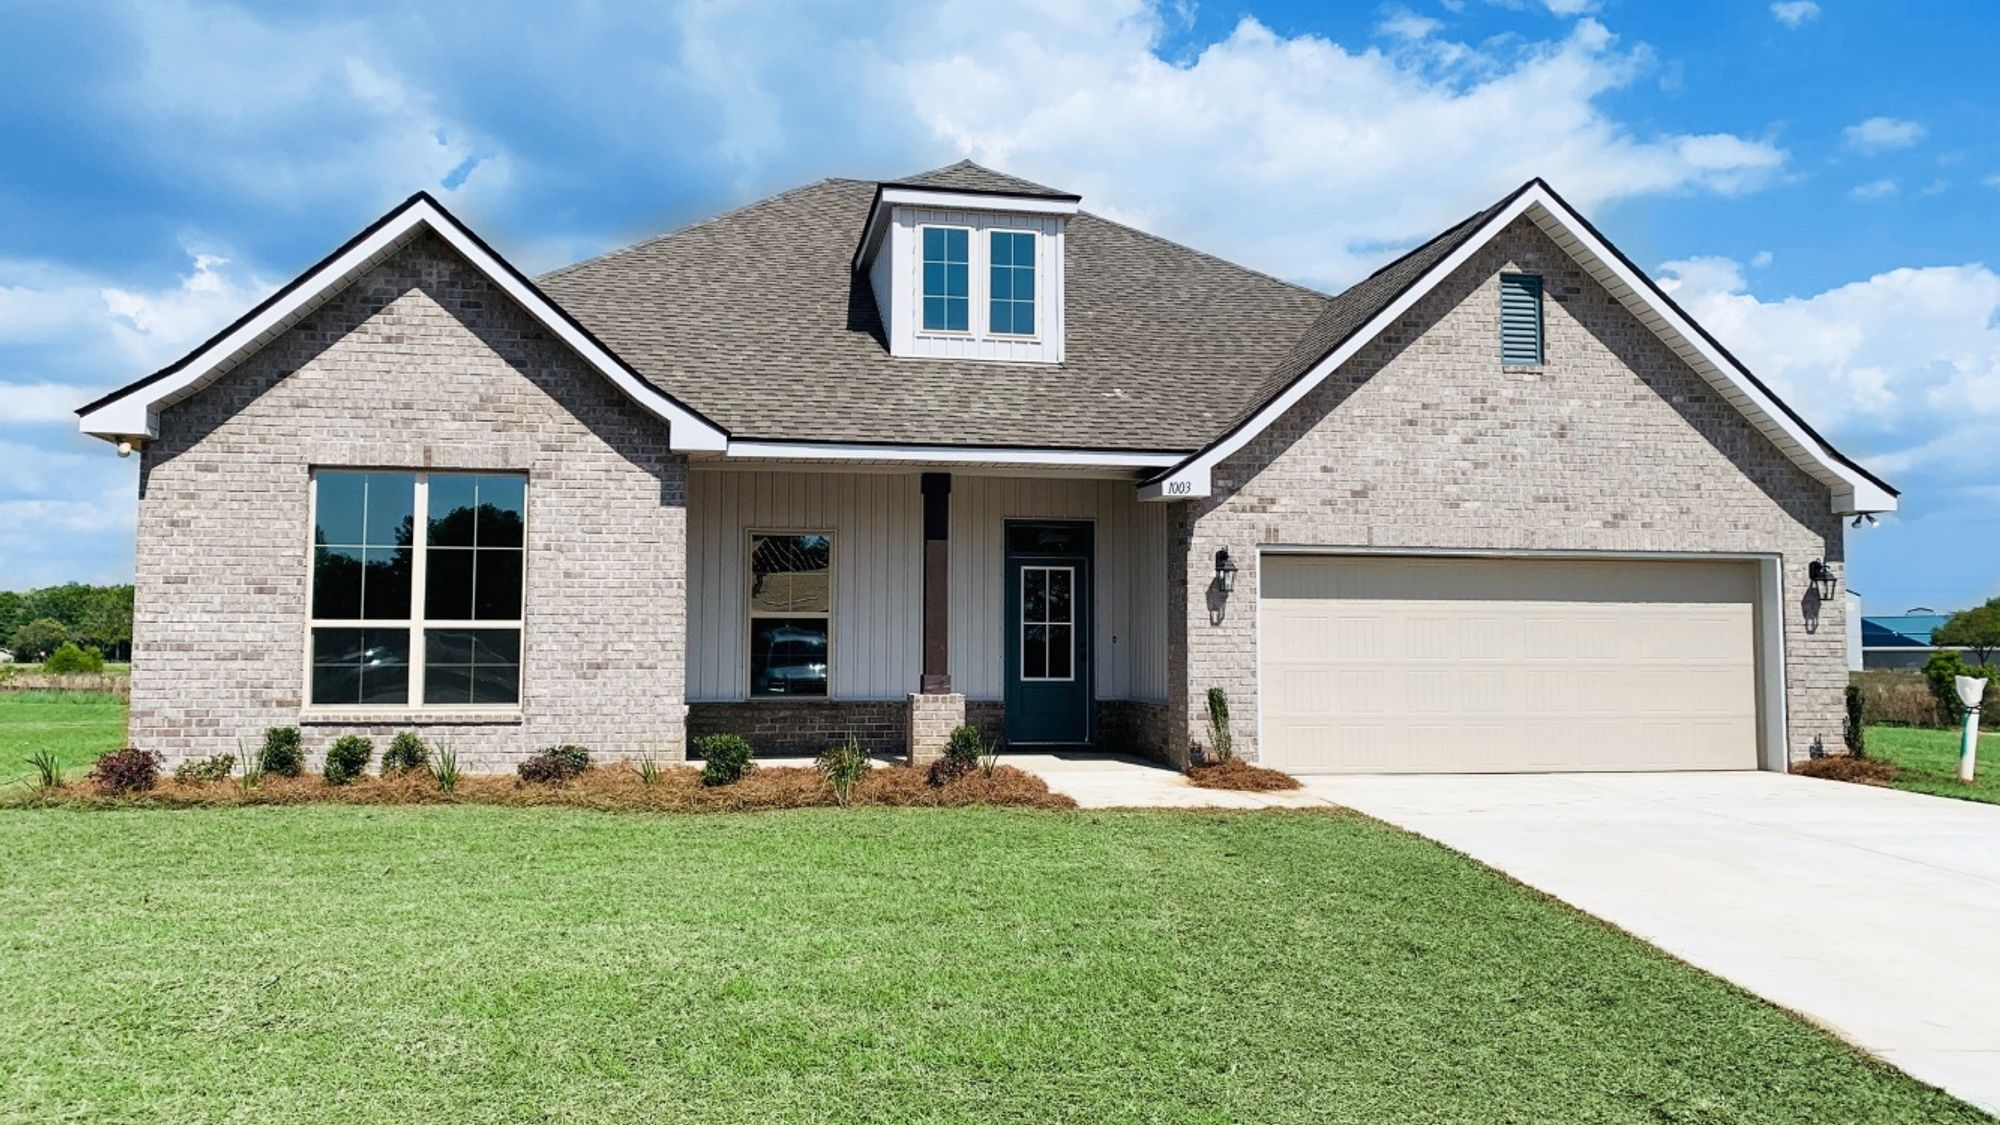 Front View (Collinswood II G) - Lafayette Place Community - DSLD Homes - Foley, AL